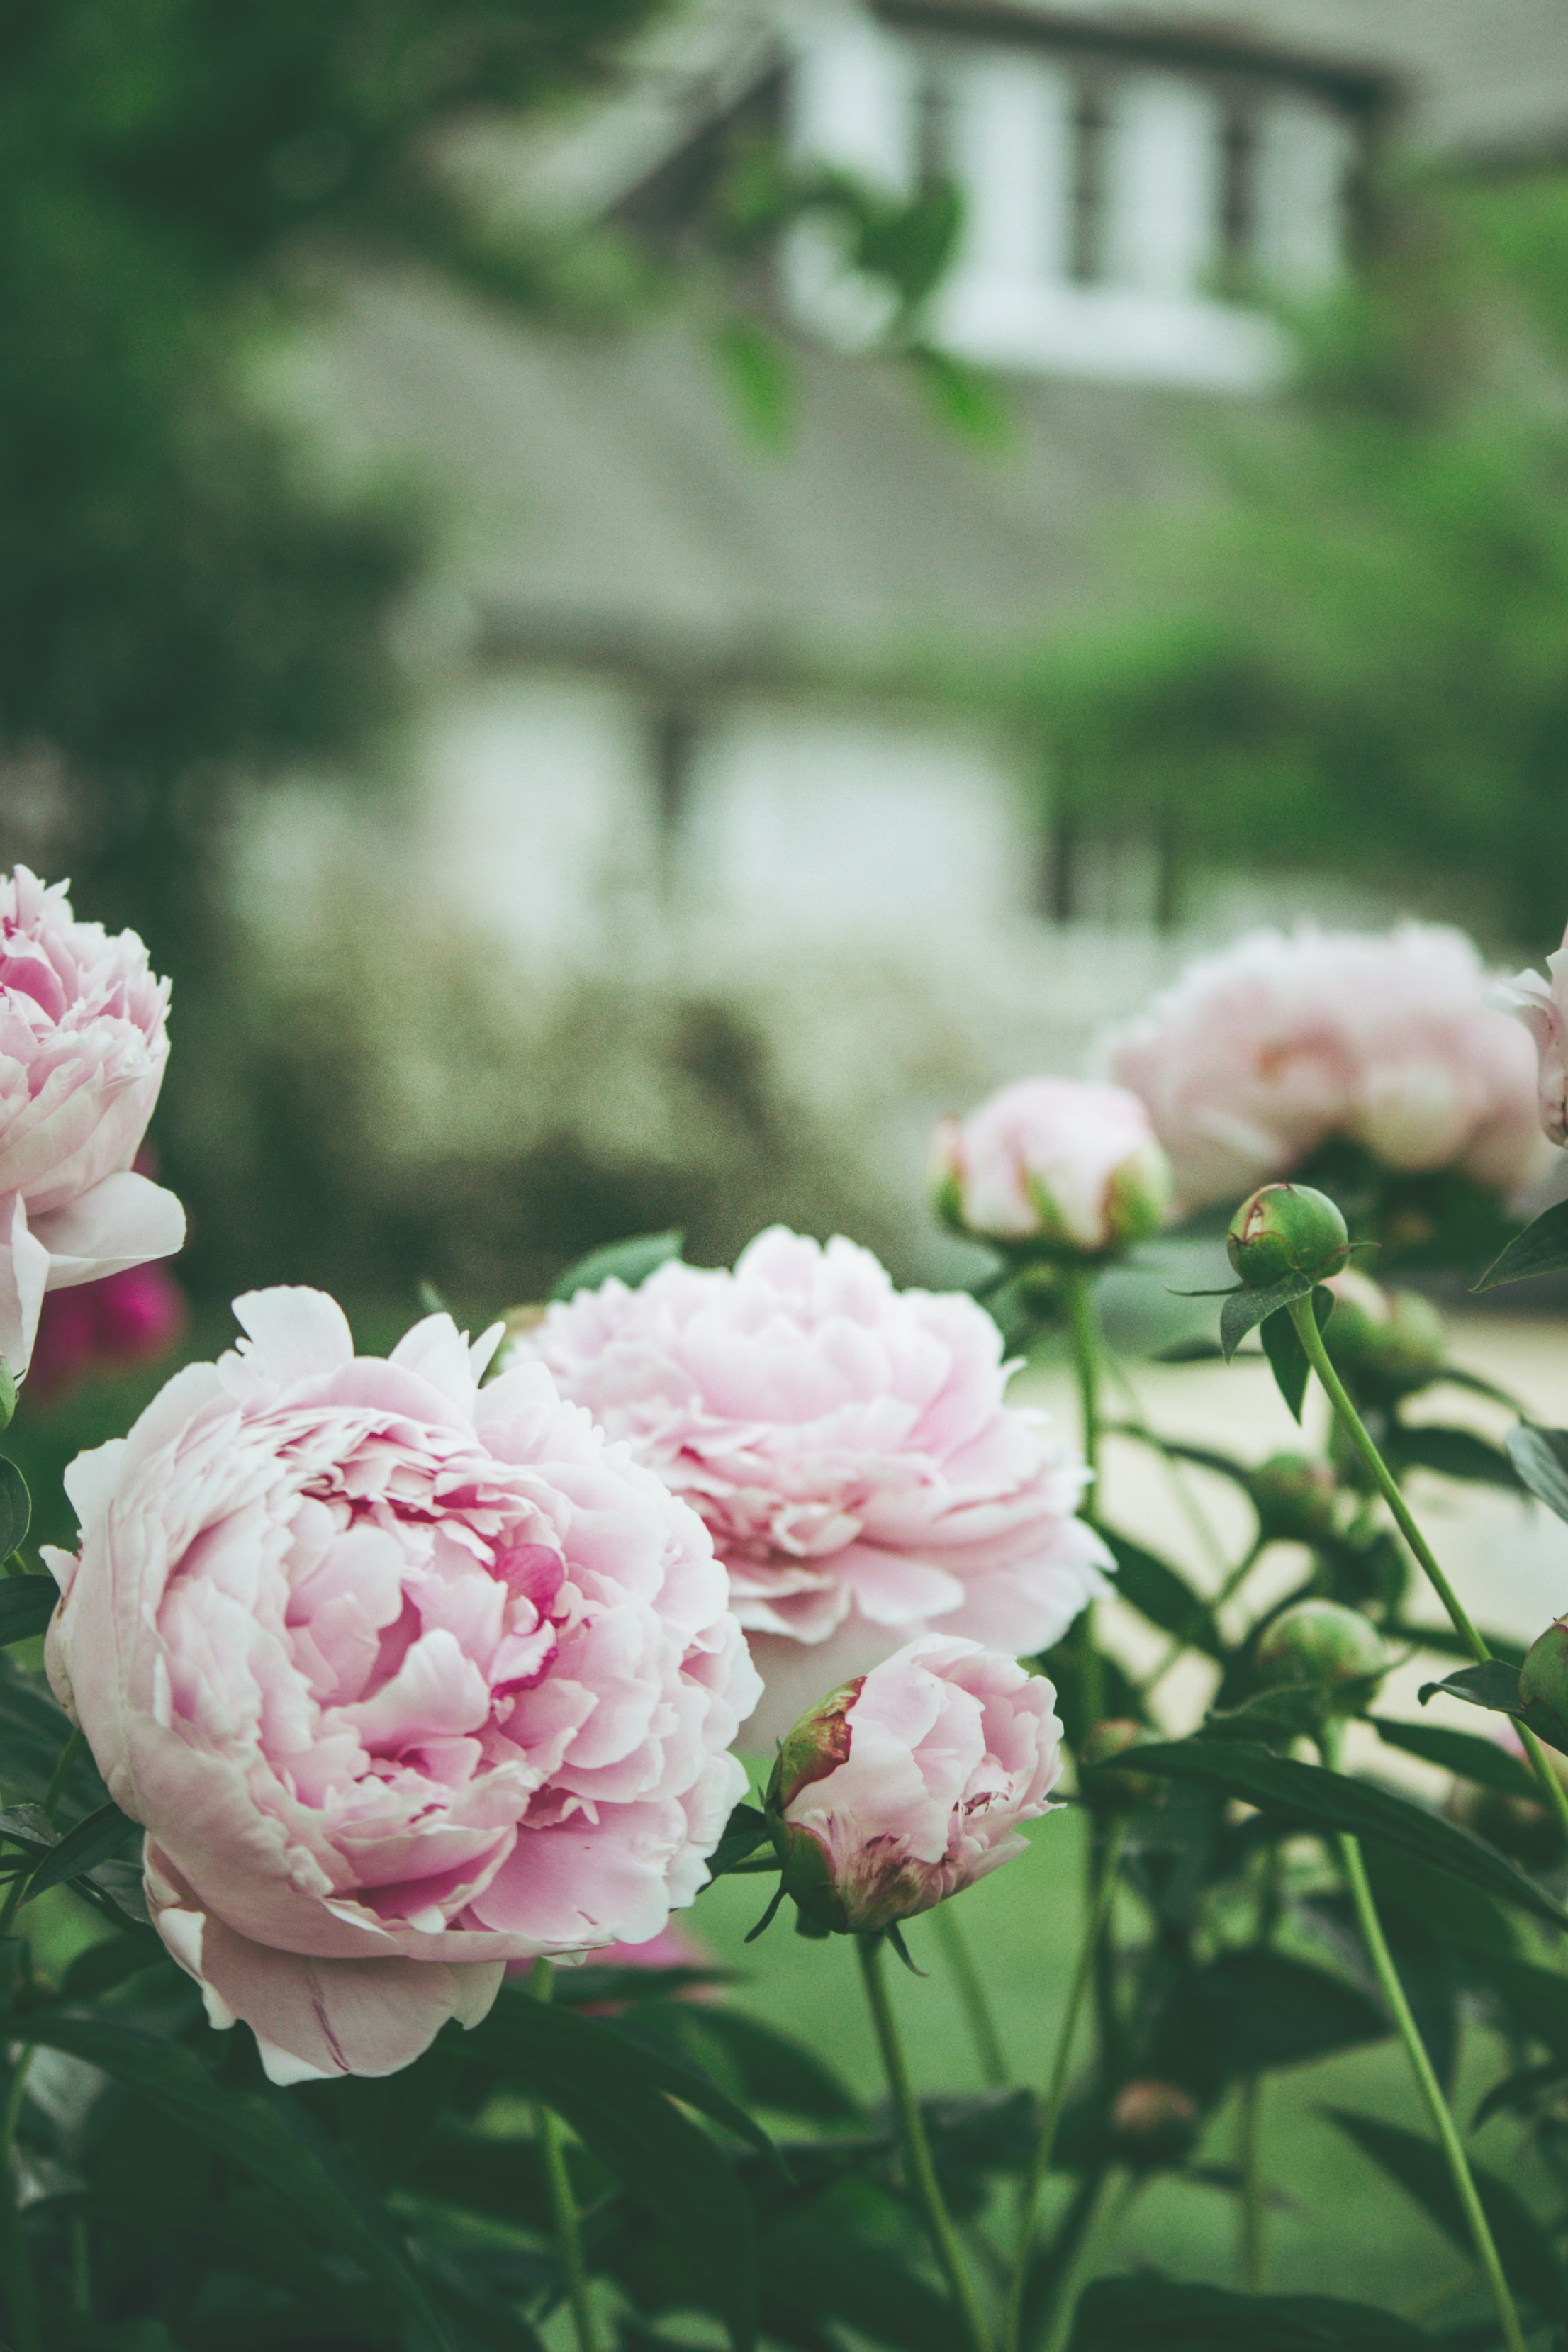 pink double petaled rose